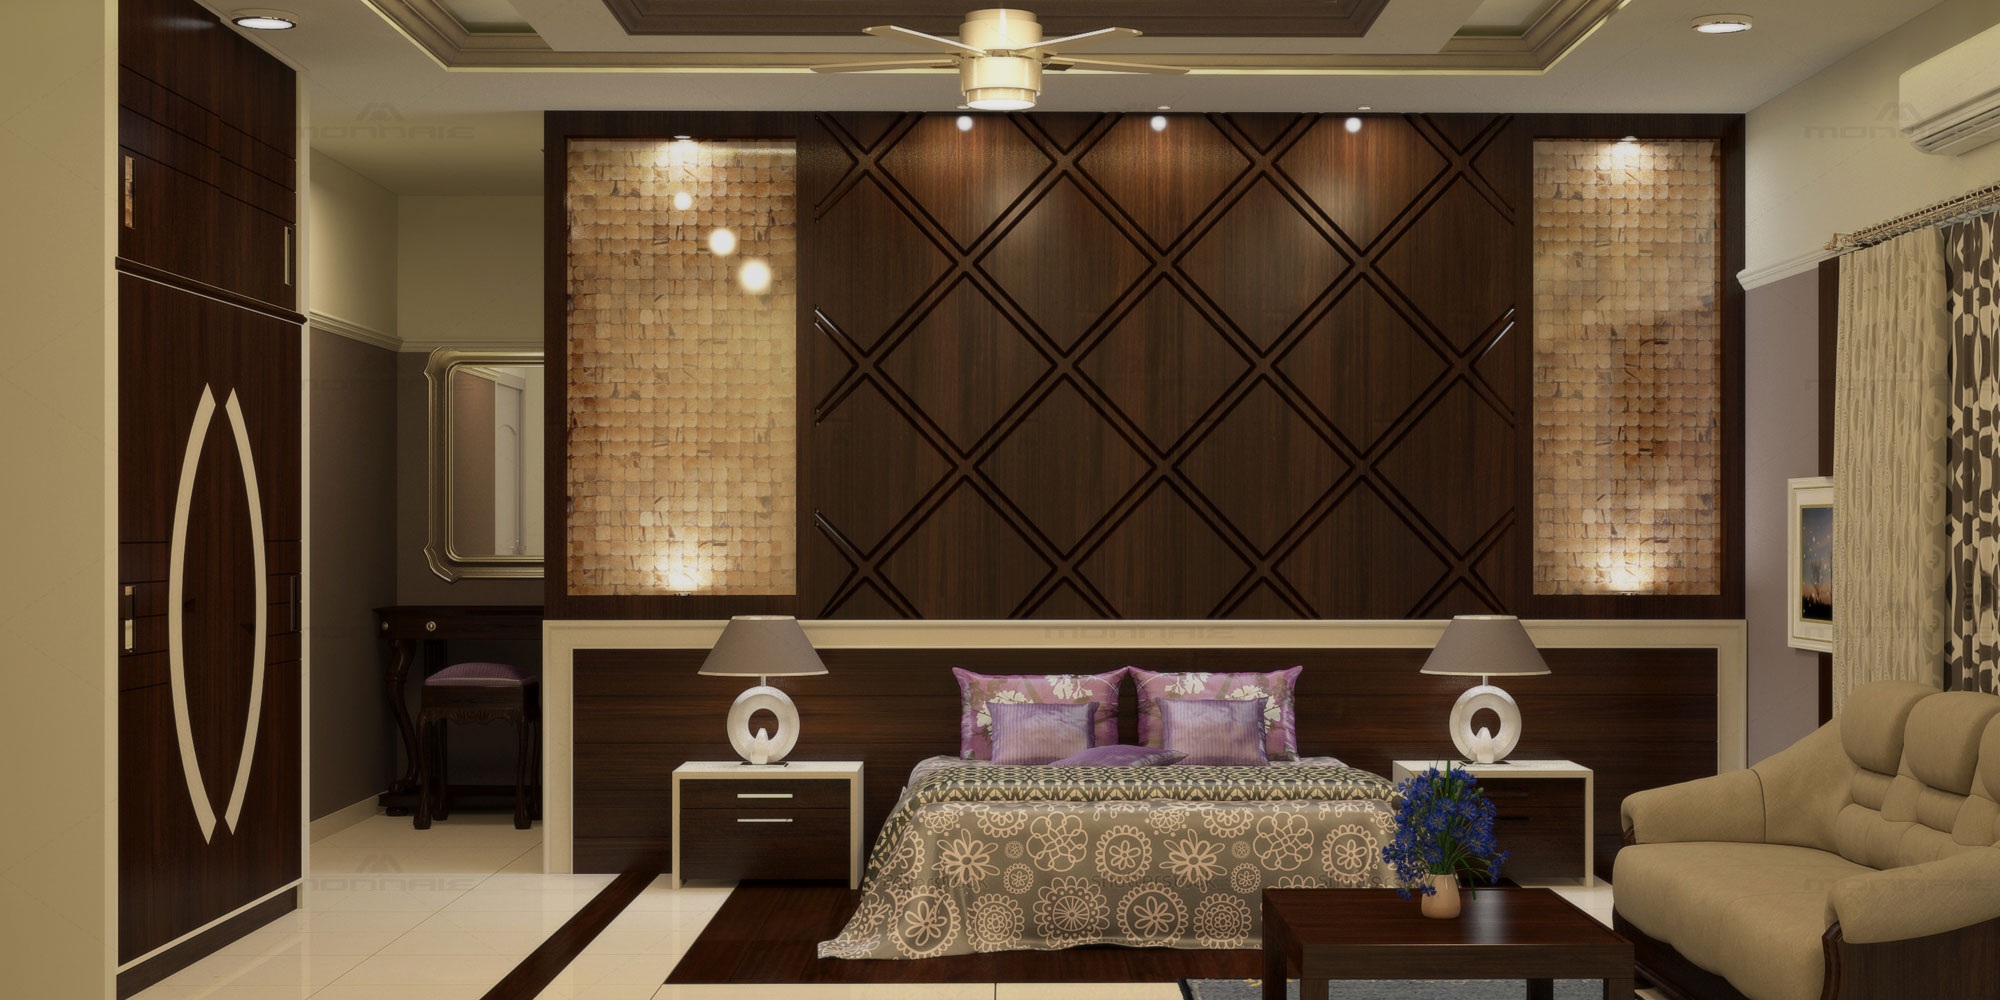 Interior Design for 1, 2, 3, 4 BHK flats, Cost, Designers, Decoration pictures